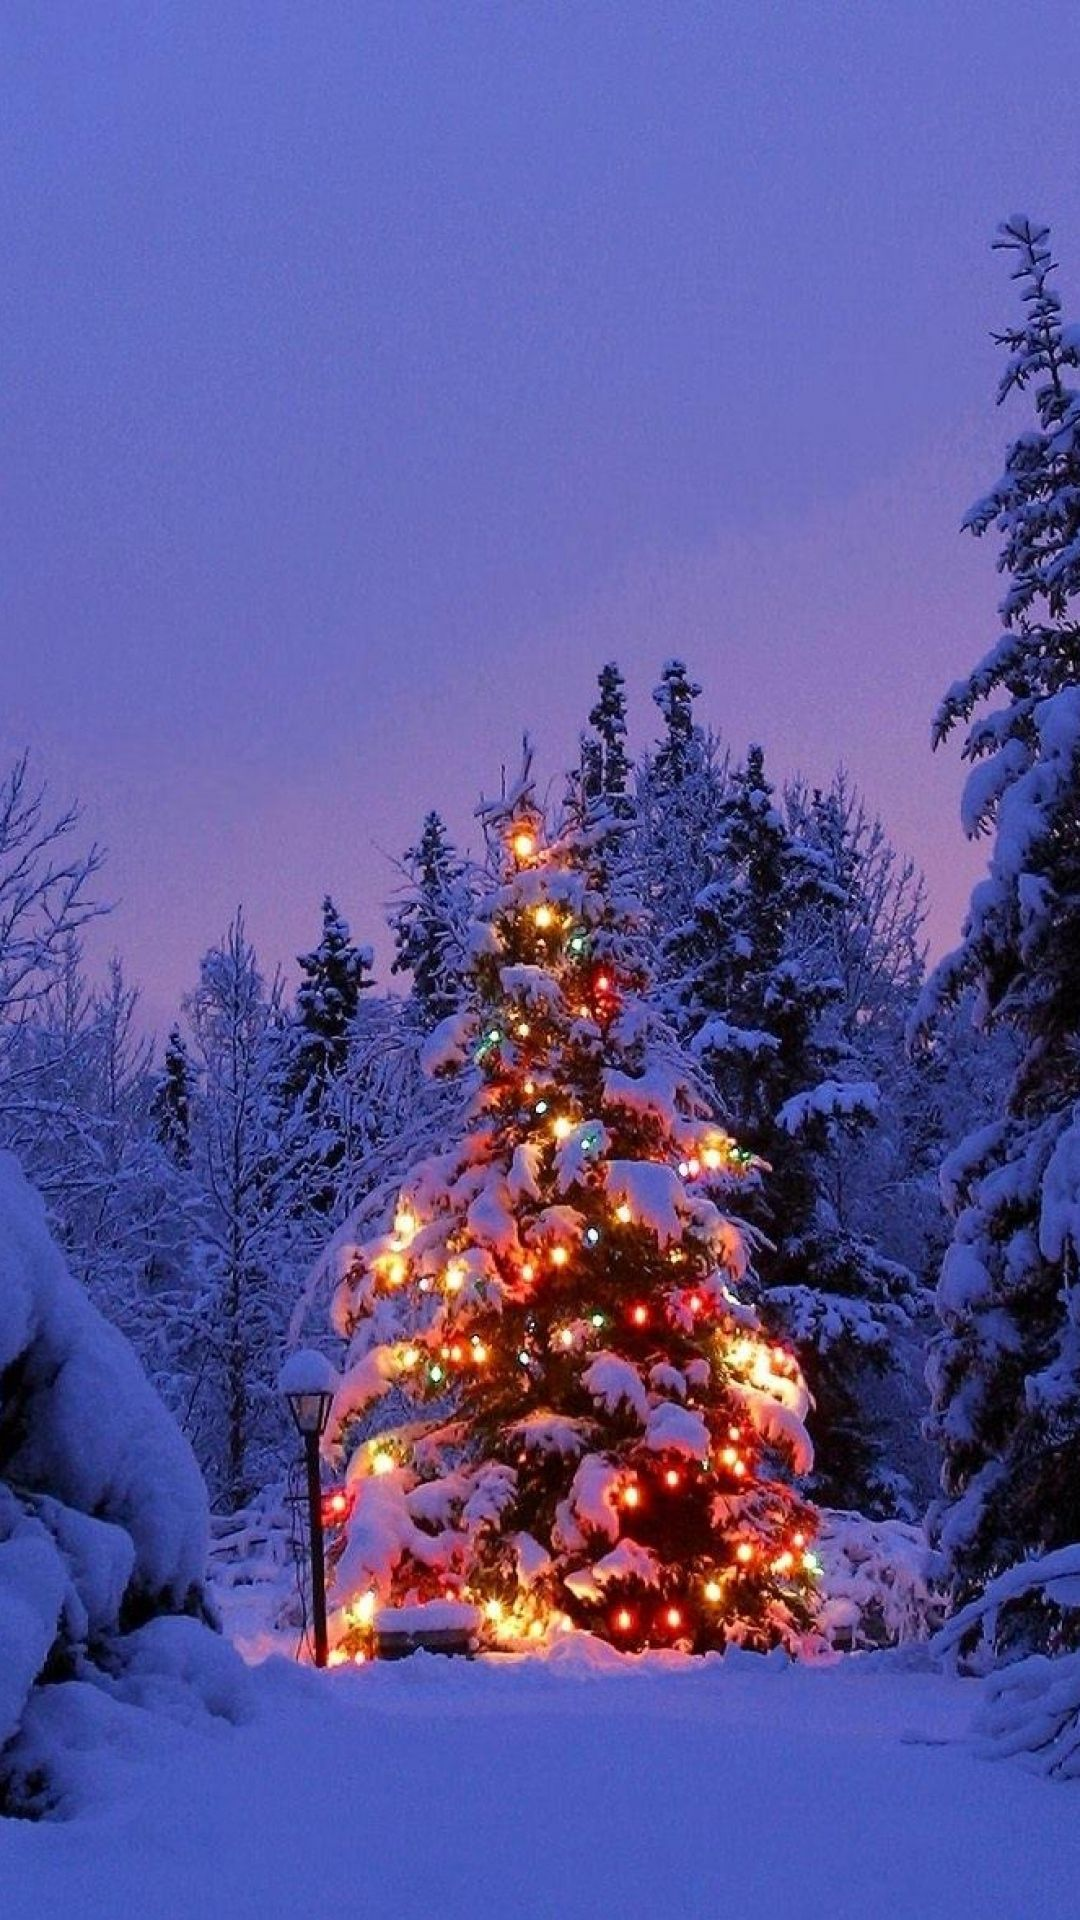 1080x1920 Snowy Decorated Christmas Tree Android Wallpaper free download